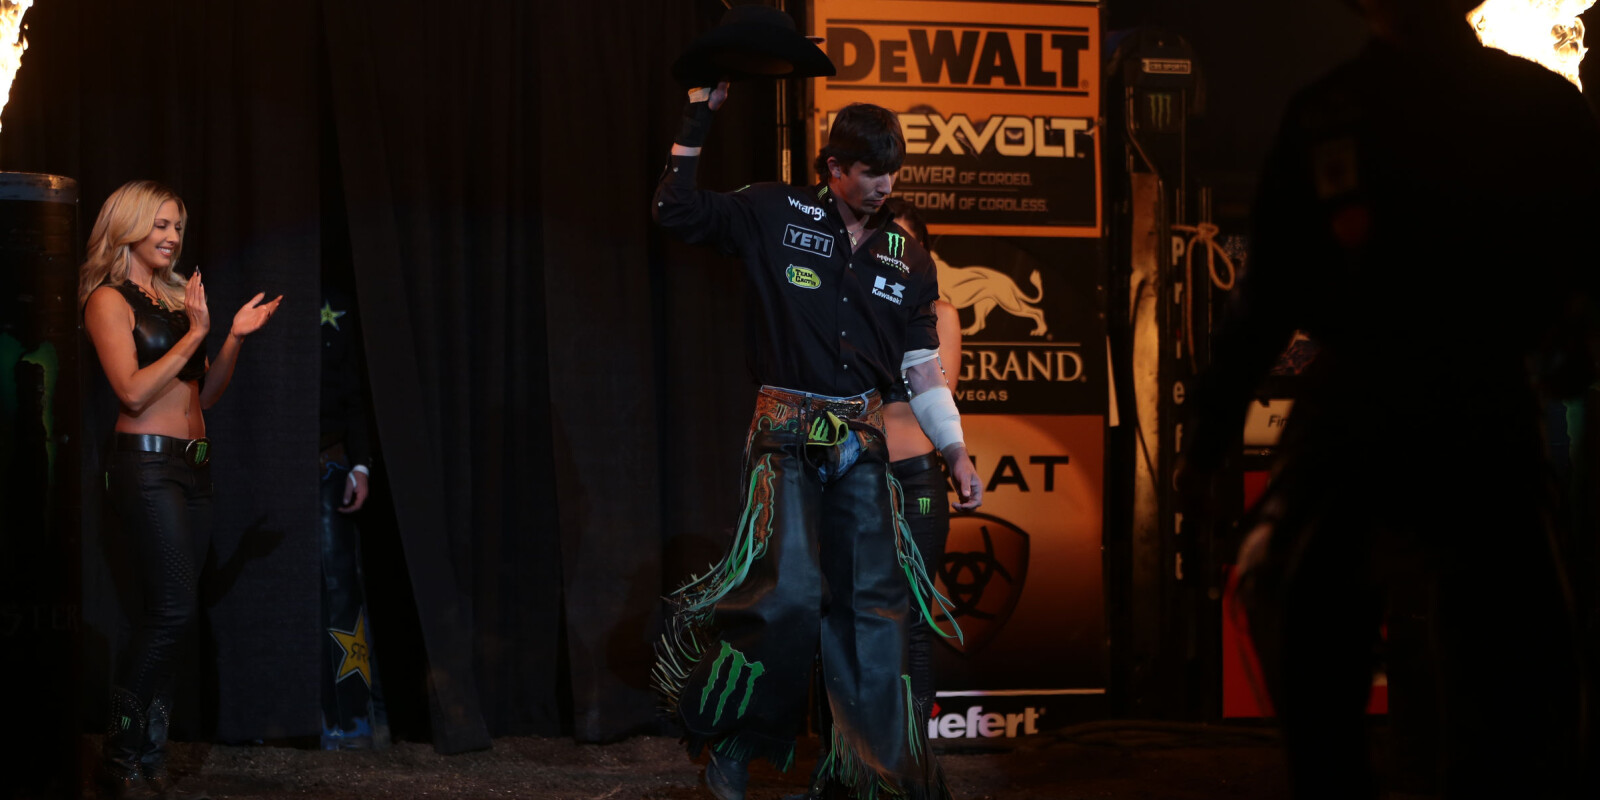 Monster athletes at the 2017 Built Ford Tough Series in Sioux Falls, South Dakota